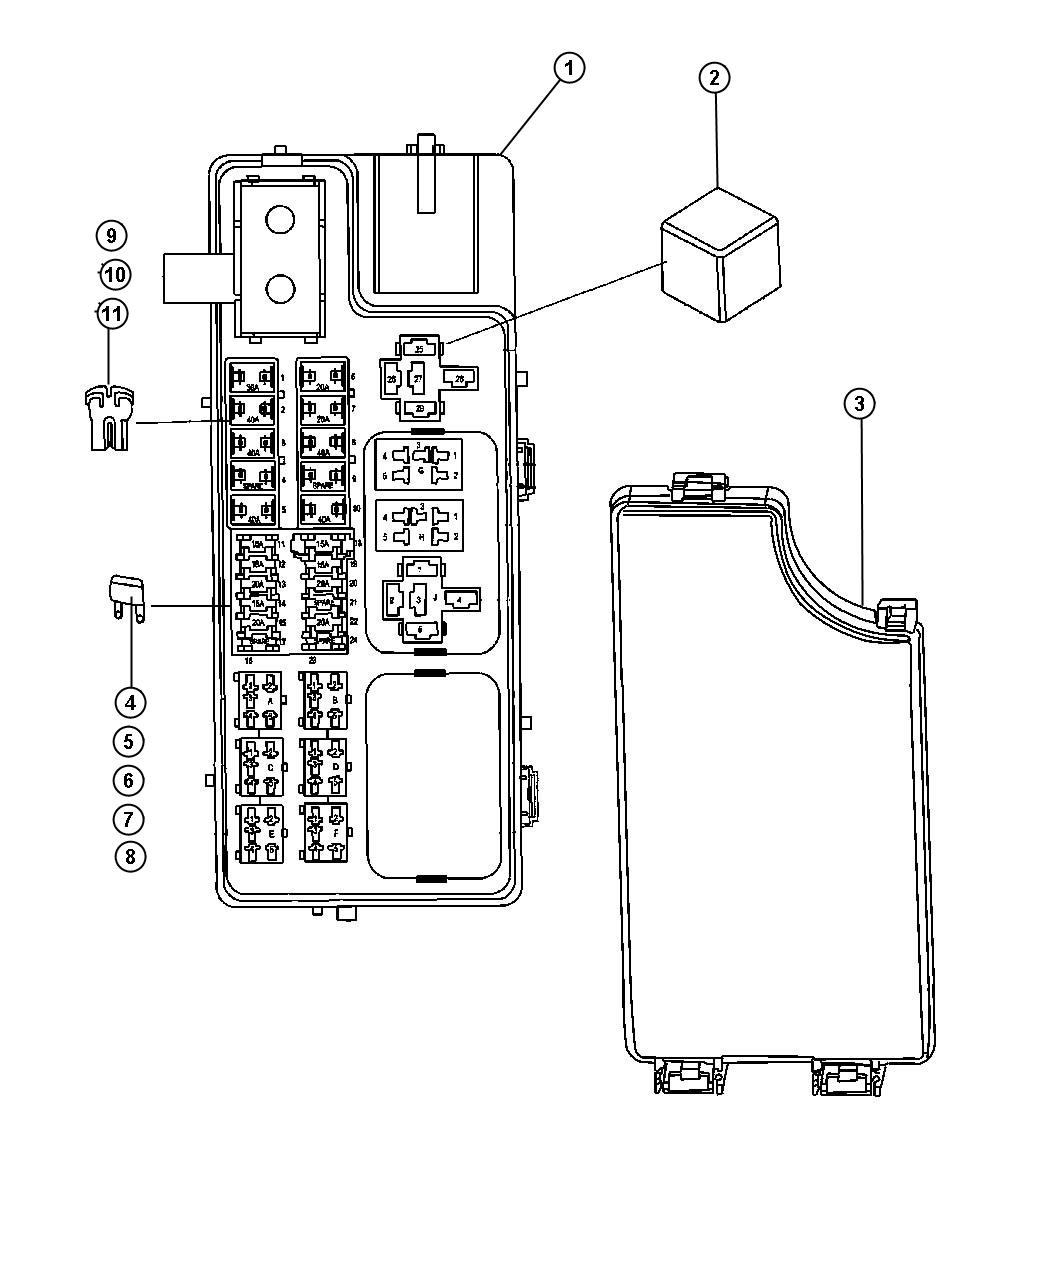 hight resolution of 2008 jeep compass fuse box location